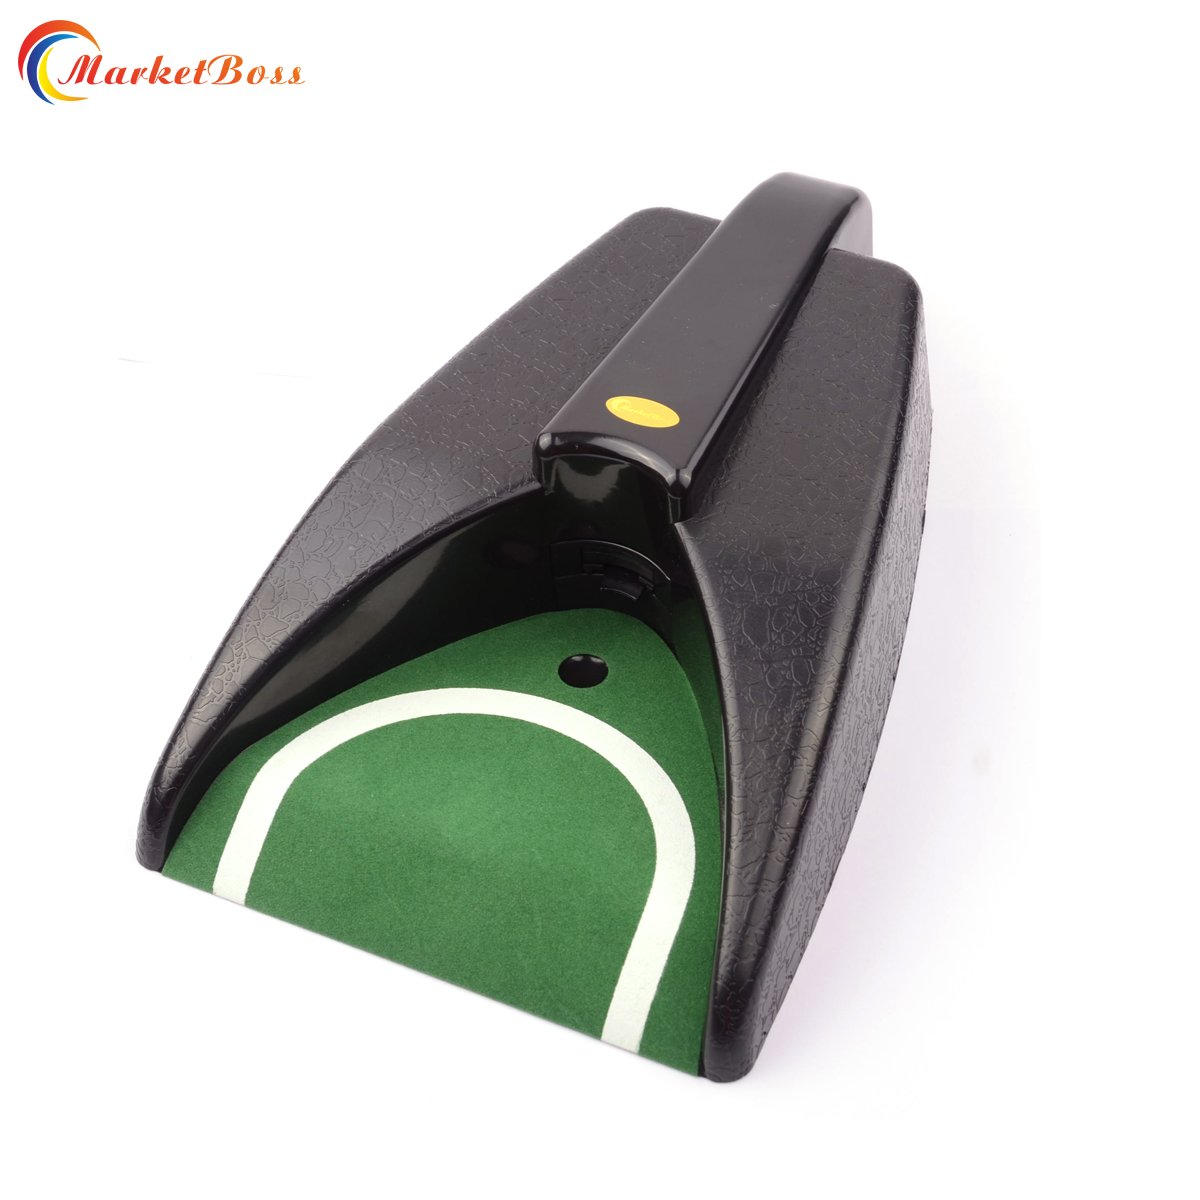 MarketBoss Golf Automatic Putting Cup Golf Putting Hole Auto Return Ball for Indoor Outdoor Golf Practice